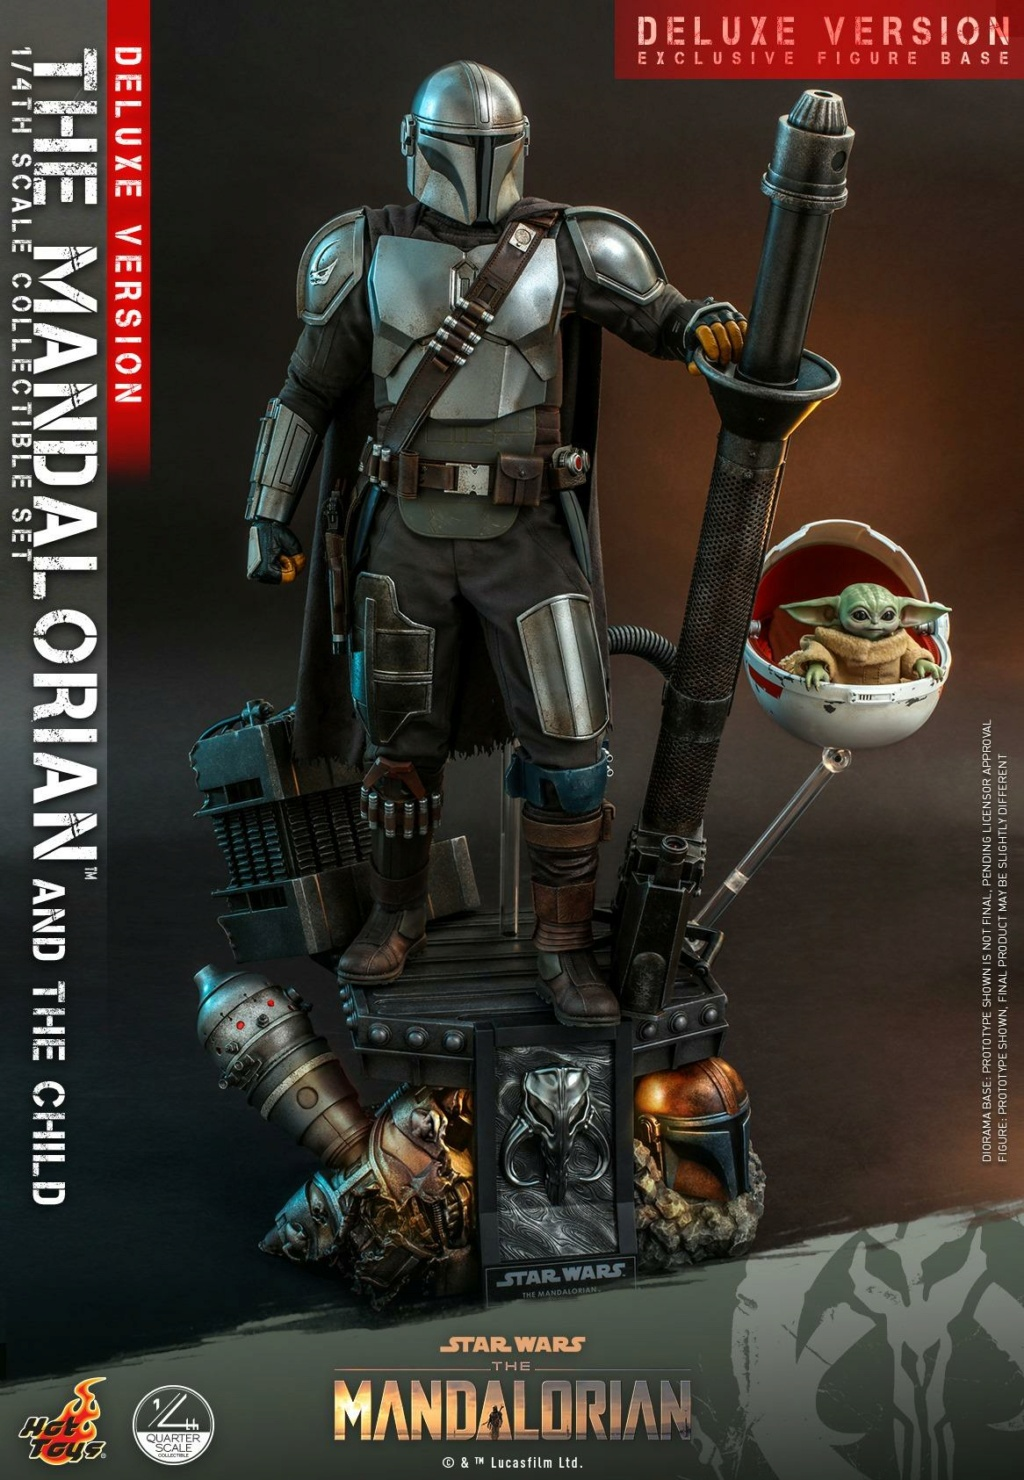 The Mandalorian & The Child Set (Deluxe) 1/4th - Hot Toys 1227